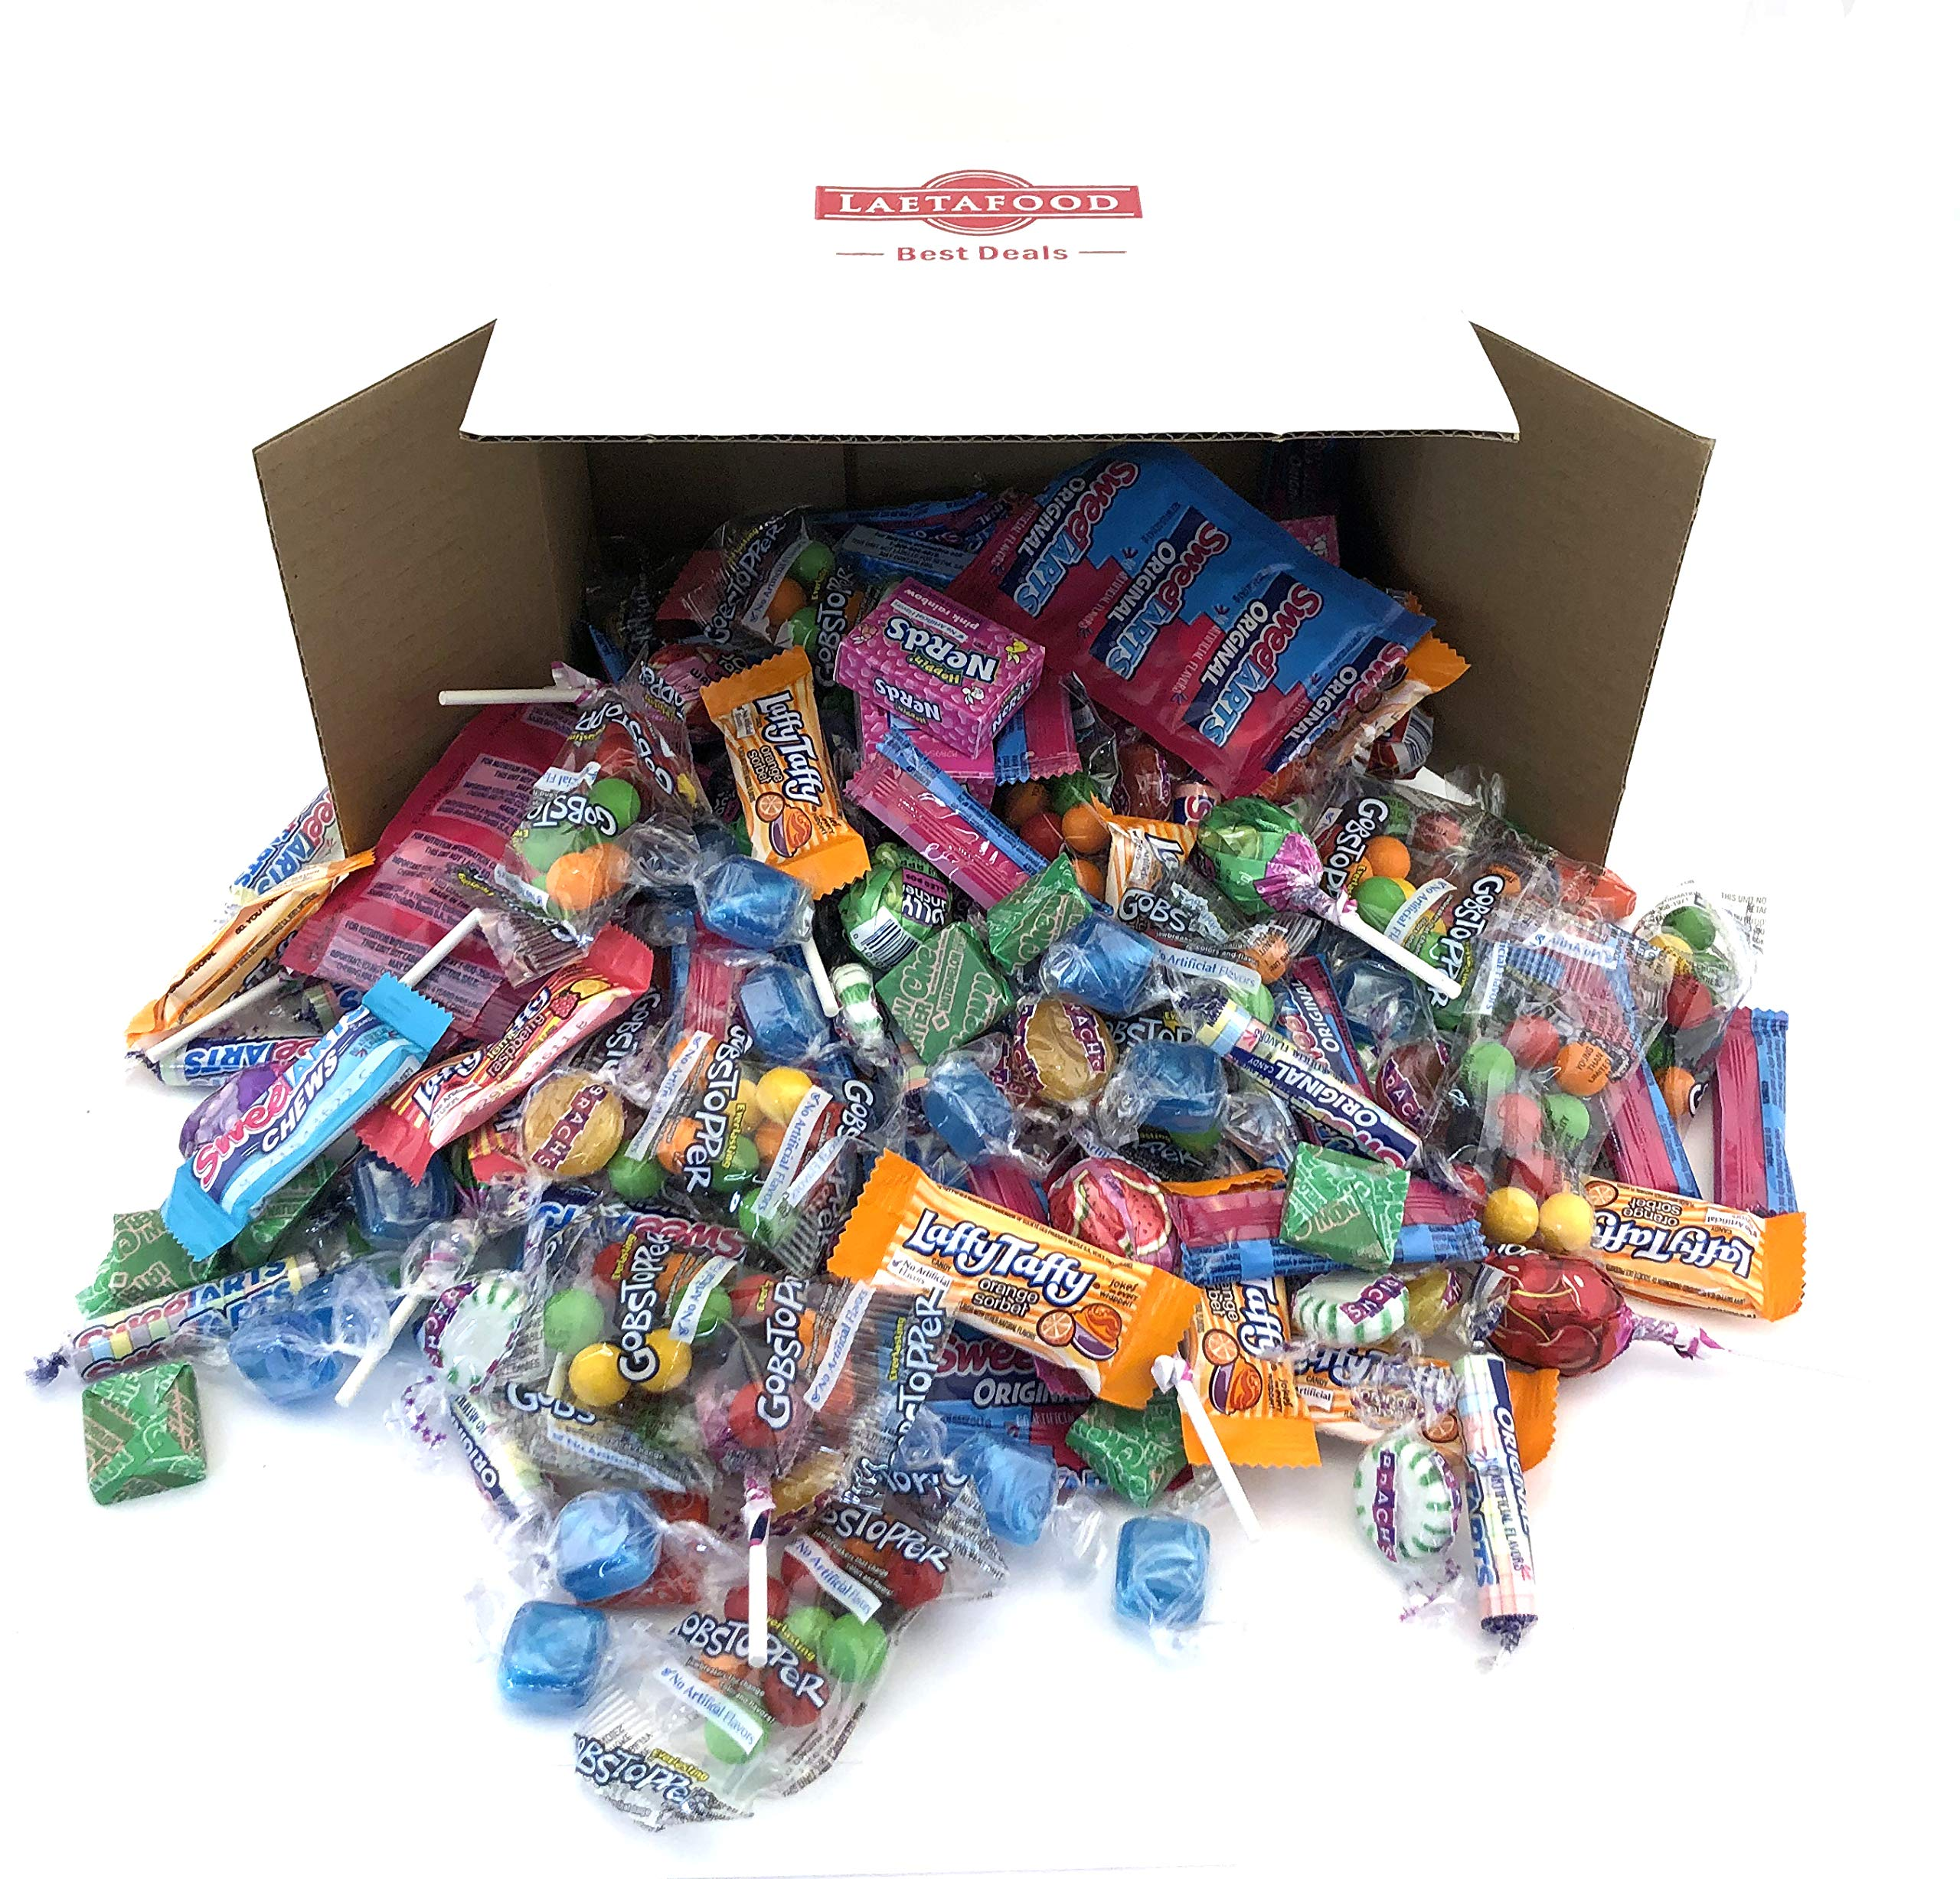 LaetaFood Pack, Favorite Candy Assortment - Jolly Rancher Pops, Wonka Laffy Taffy, SweeTarts, Nerds Mini Box, Brach's Candy, Gobstopper, Primrose Blue Mints, Ferrara Now Later Chews (10 Pound Bulk) by LAETAFOOD